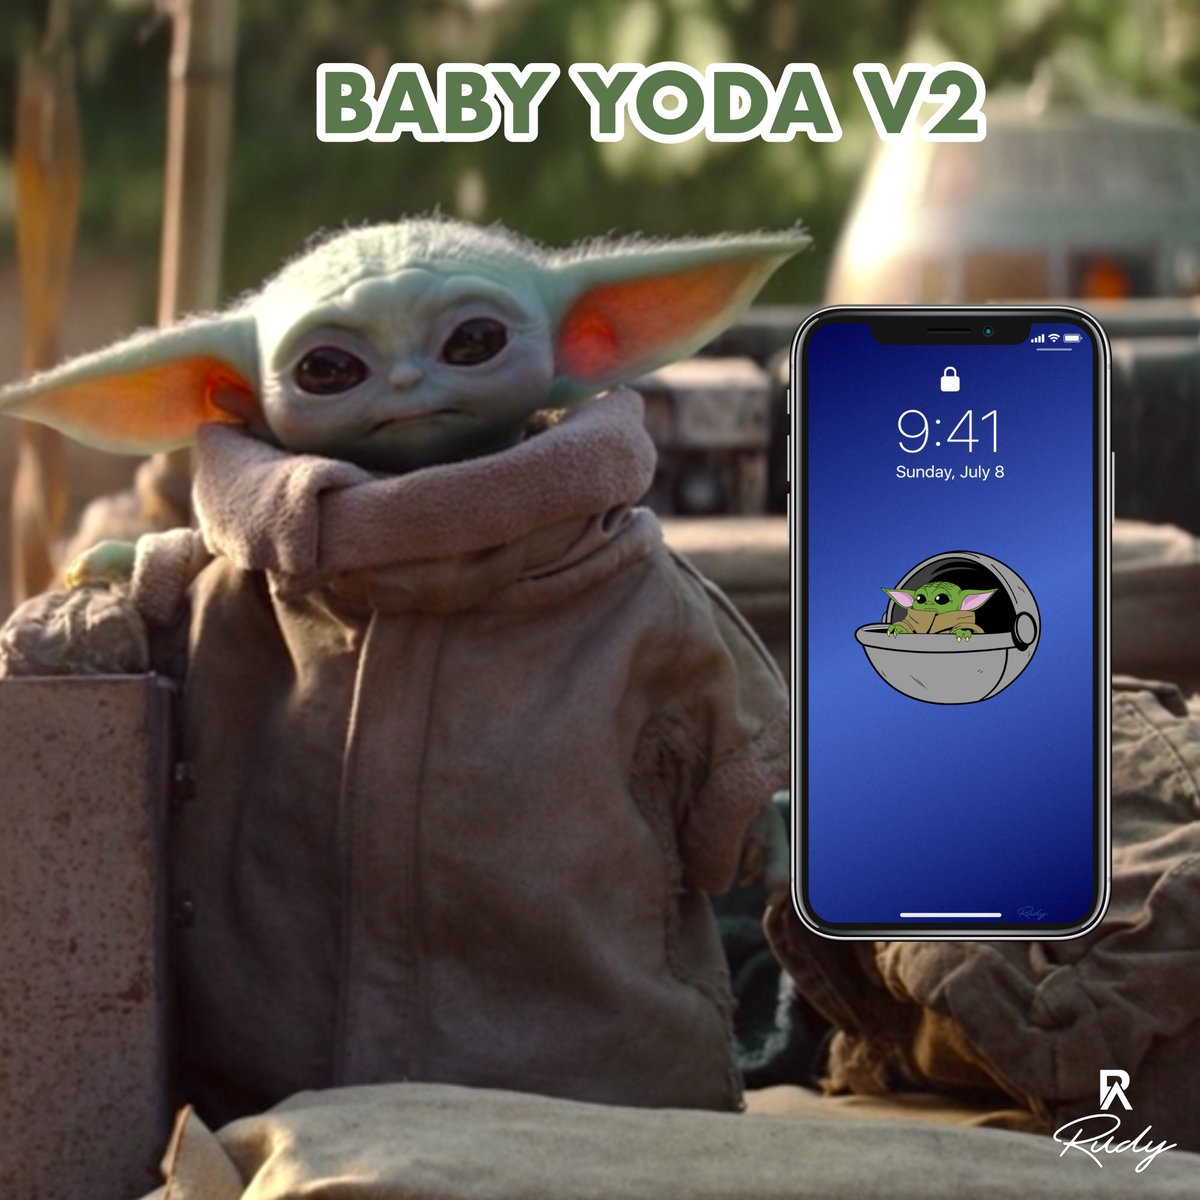 Rudy On Twitter New Wallpaper Baby Yoda V2 Only On Sale Wallpapers Wallphone Artwork Art Abstract Abstractart Abstractpainting Digitalart Digitalpainting Digitalartwork Luxury Iphone Iloveapple Iphone11promax Iphone11